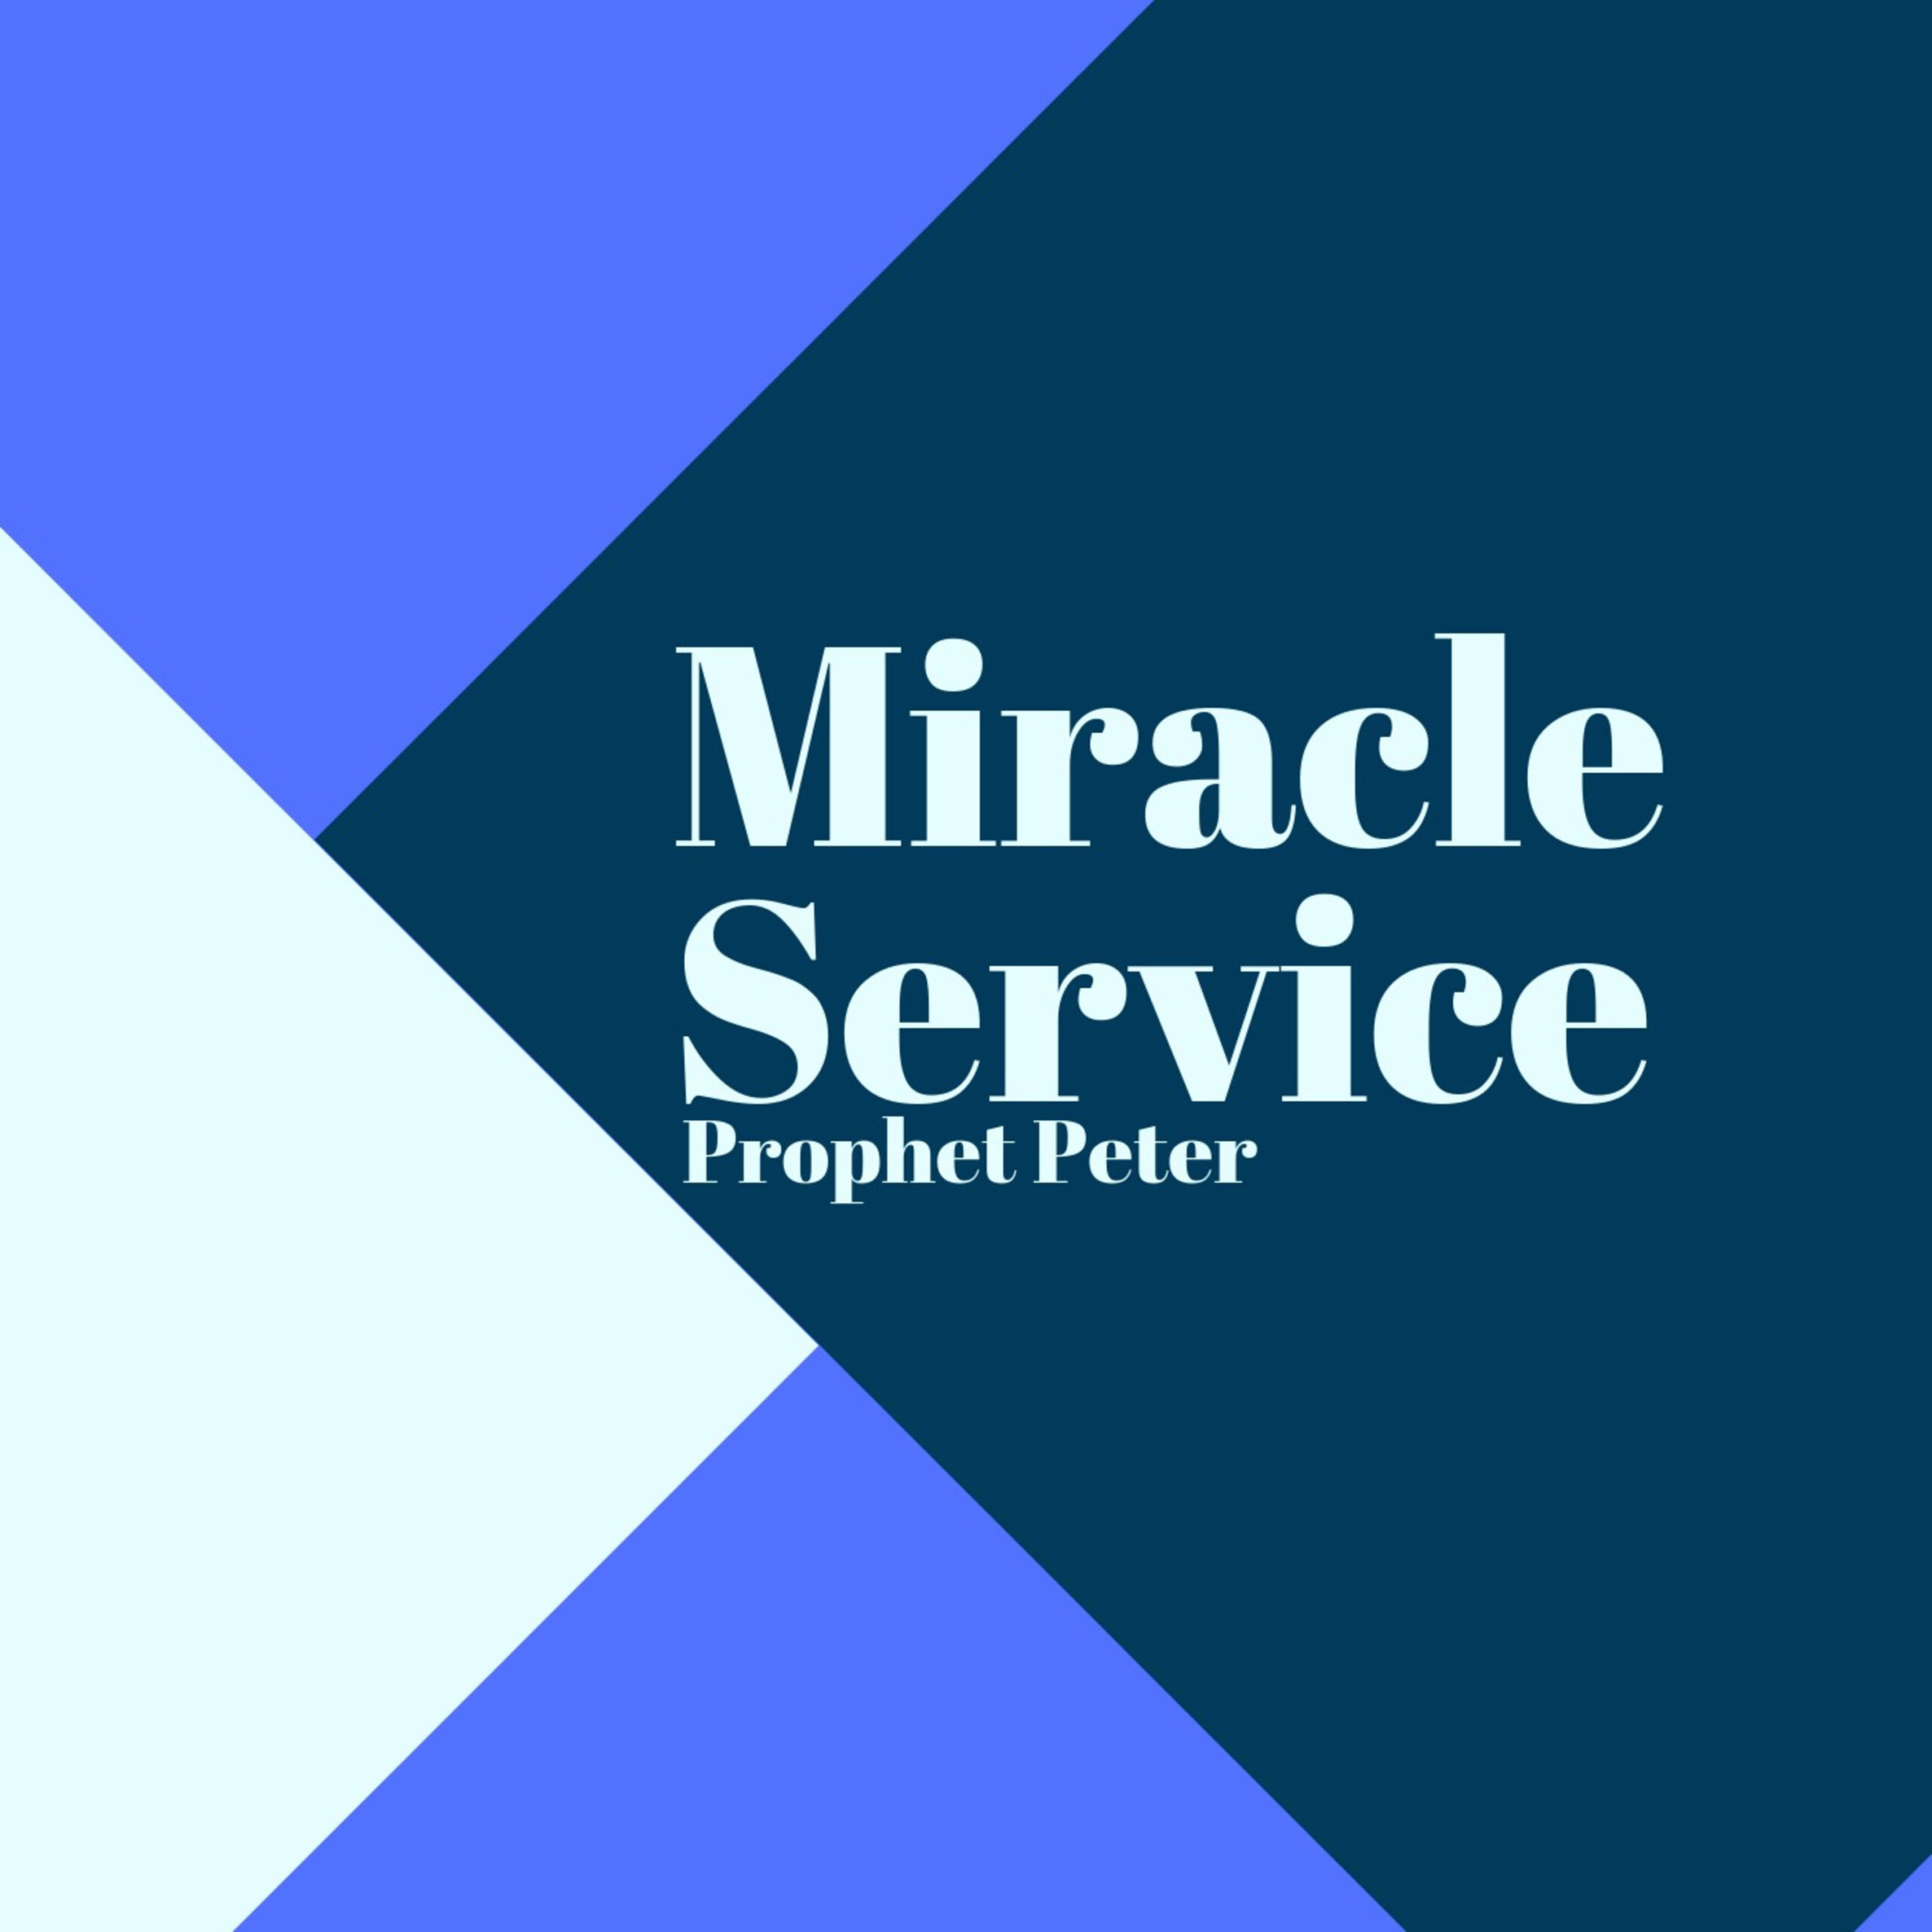 Miracle Service on 31/3/2019